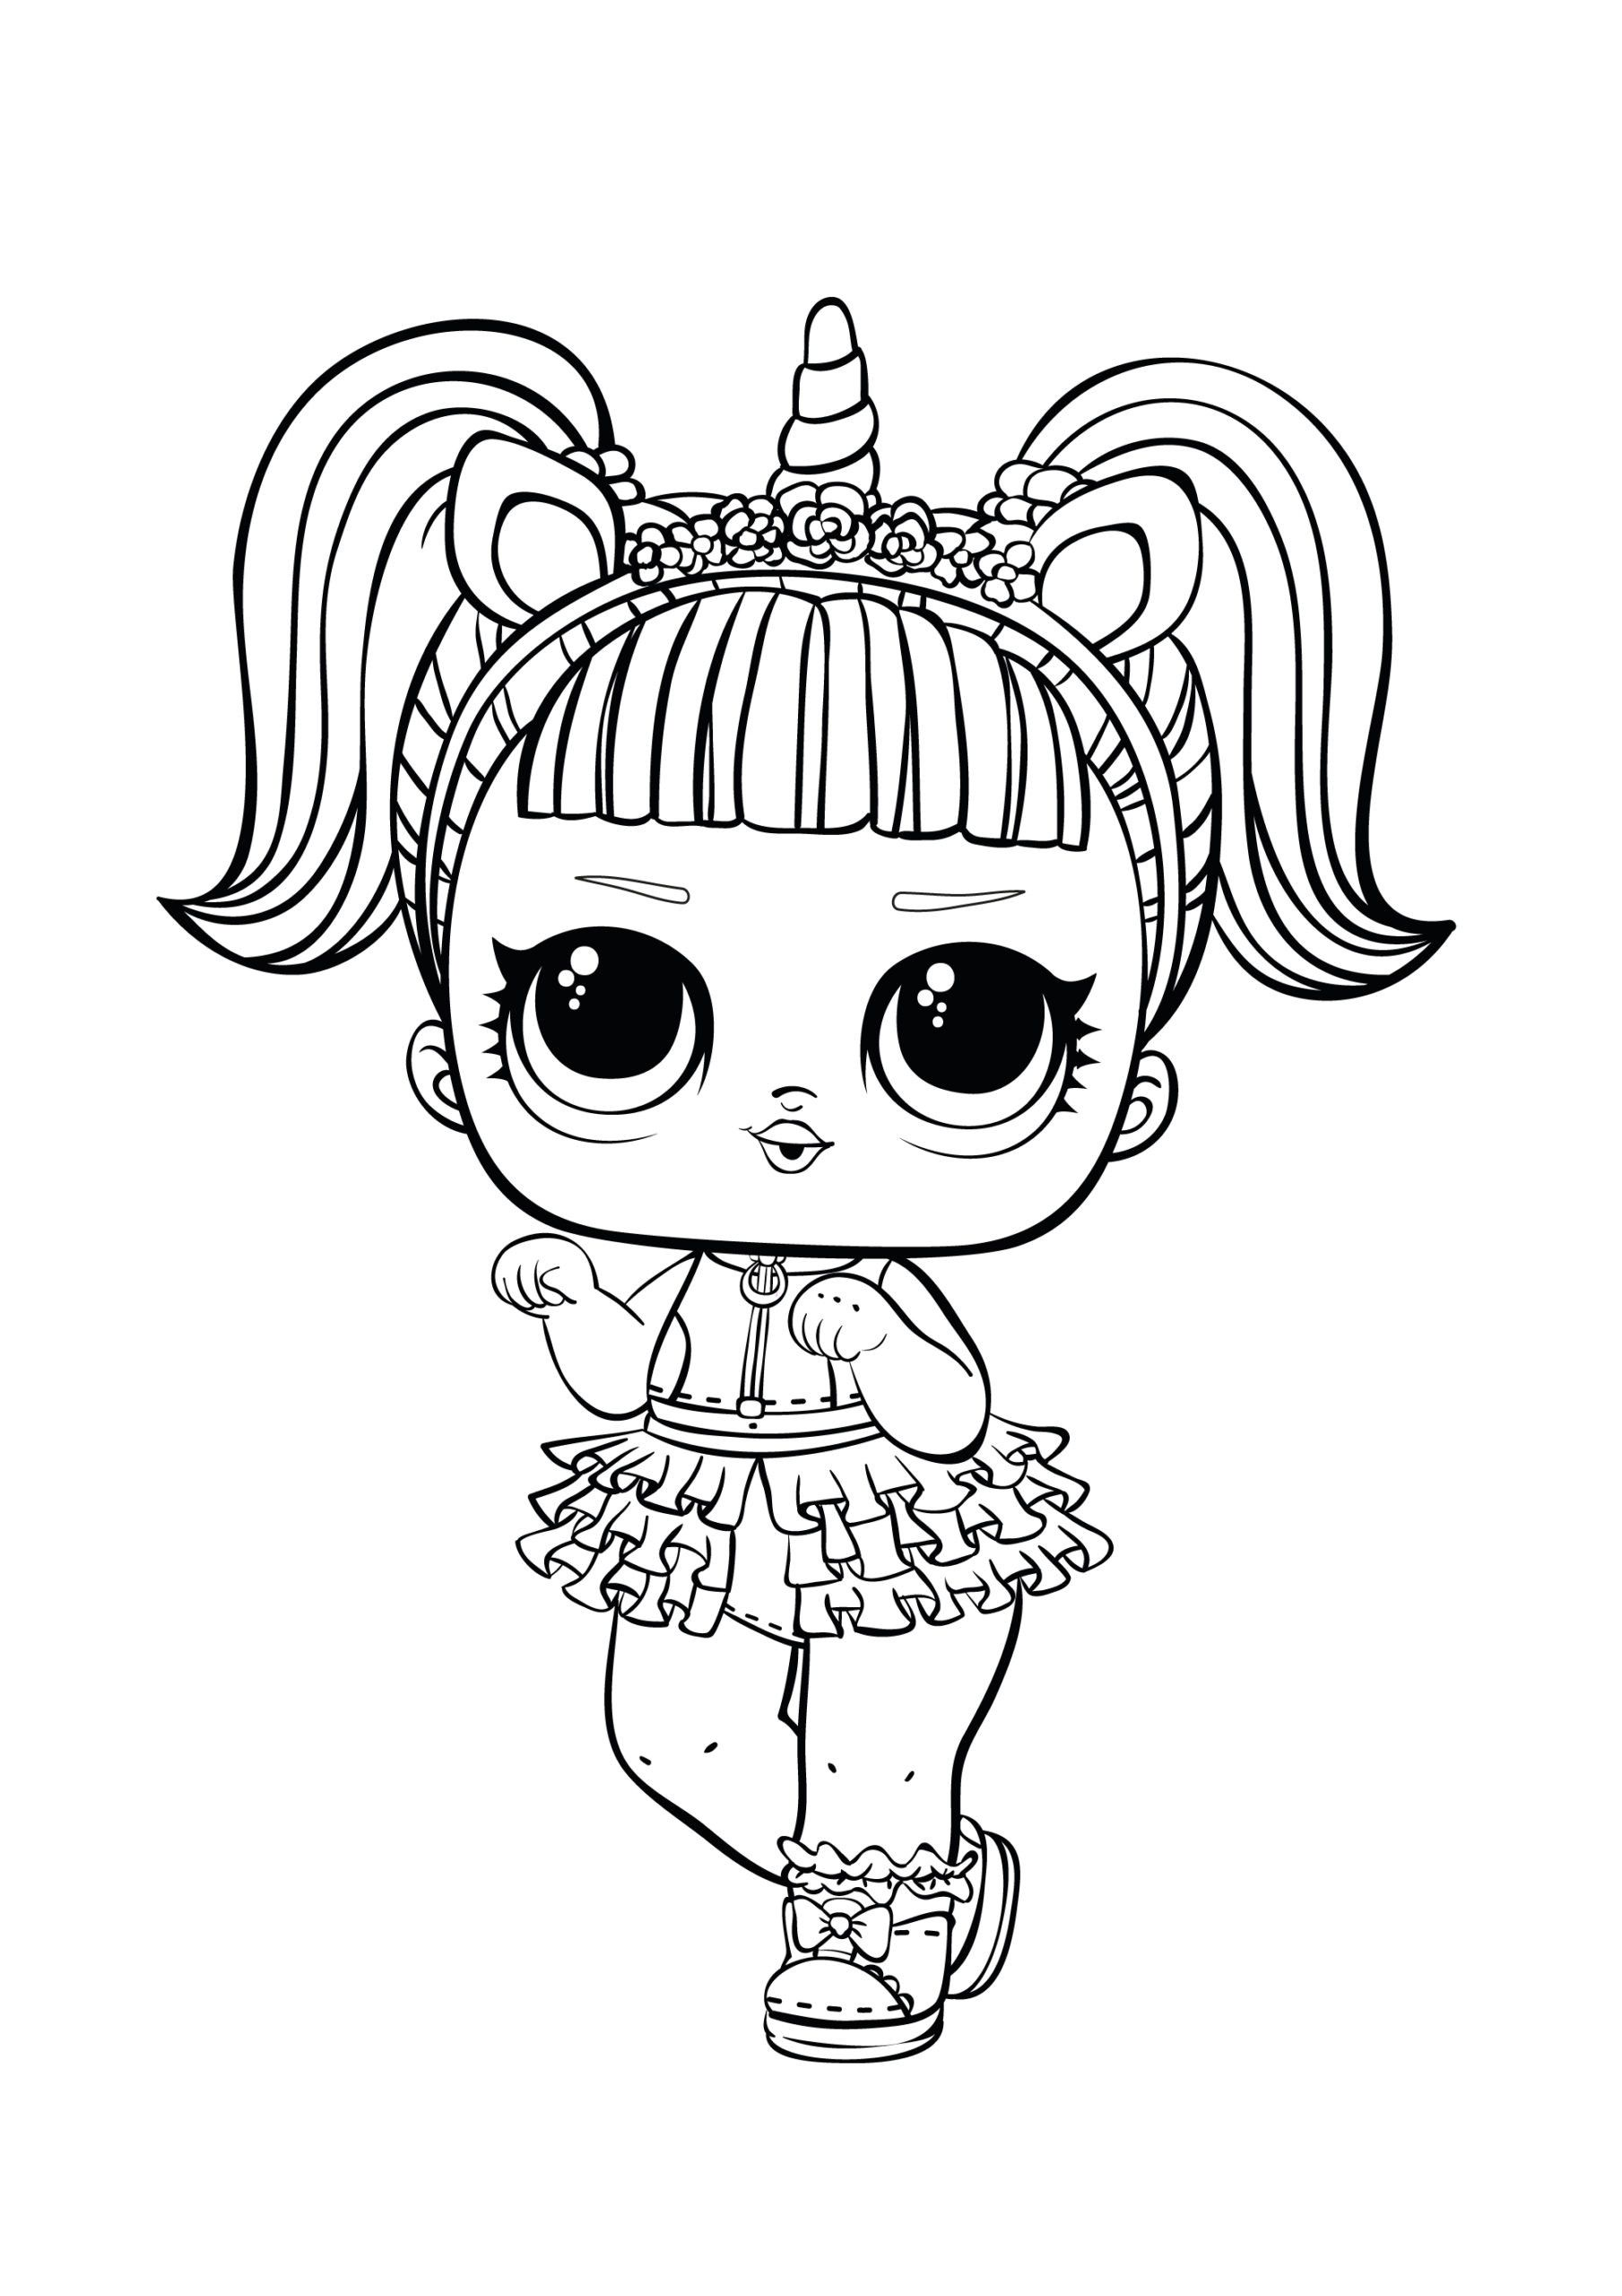 Unicorn Lol Coloring Page Youngandtae Com Unicorn Coloring Pages Kitty Coloring Emoji Coloring Pages